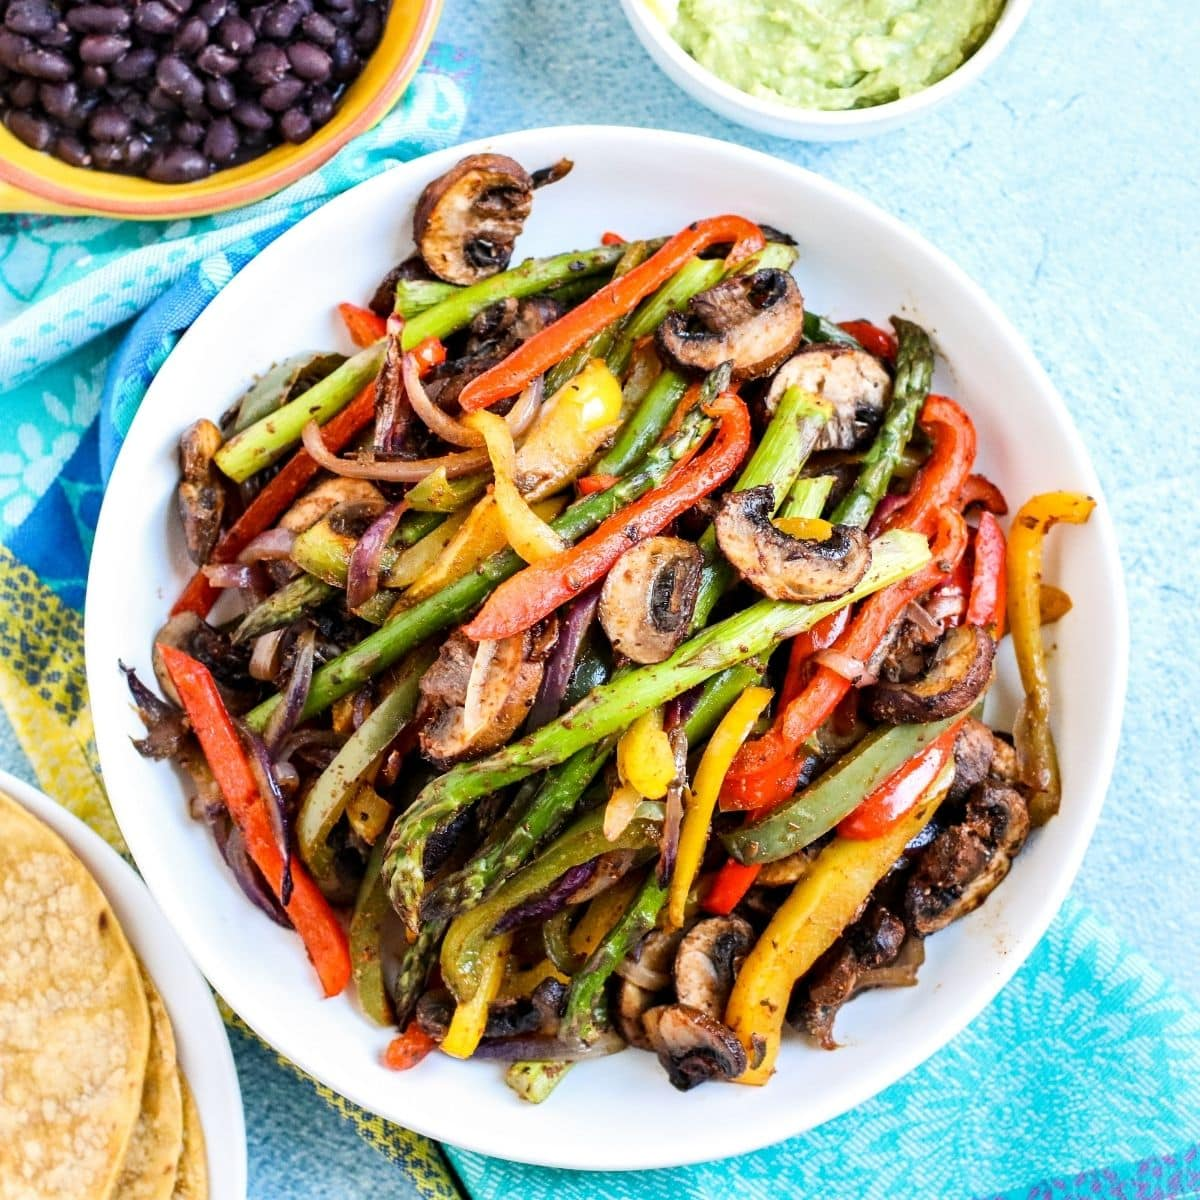 Platter of veggie fajitas ready to be served